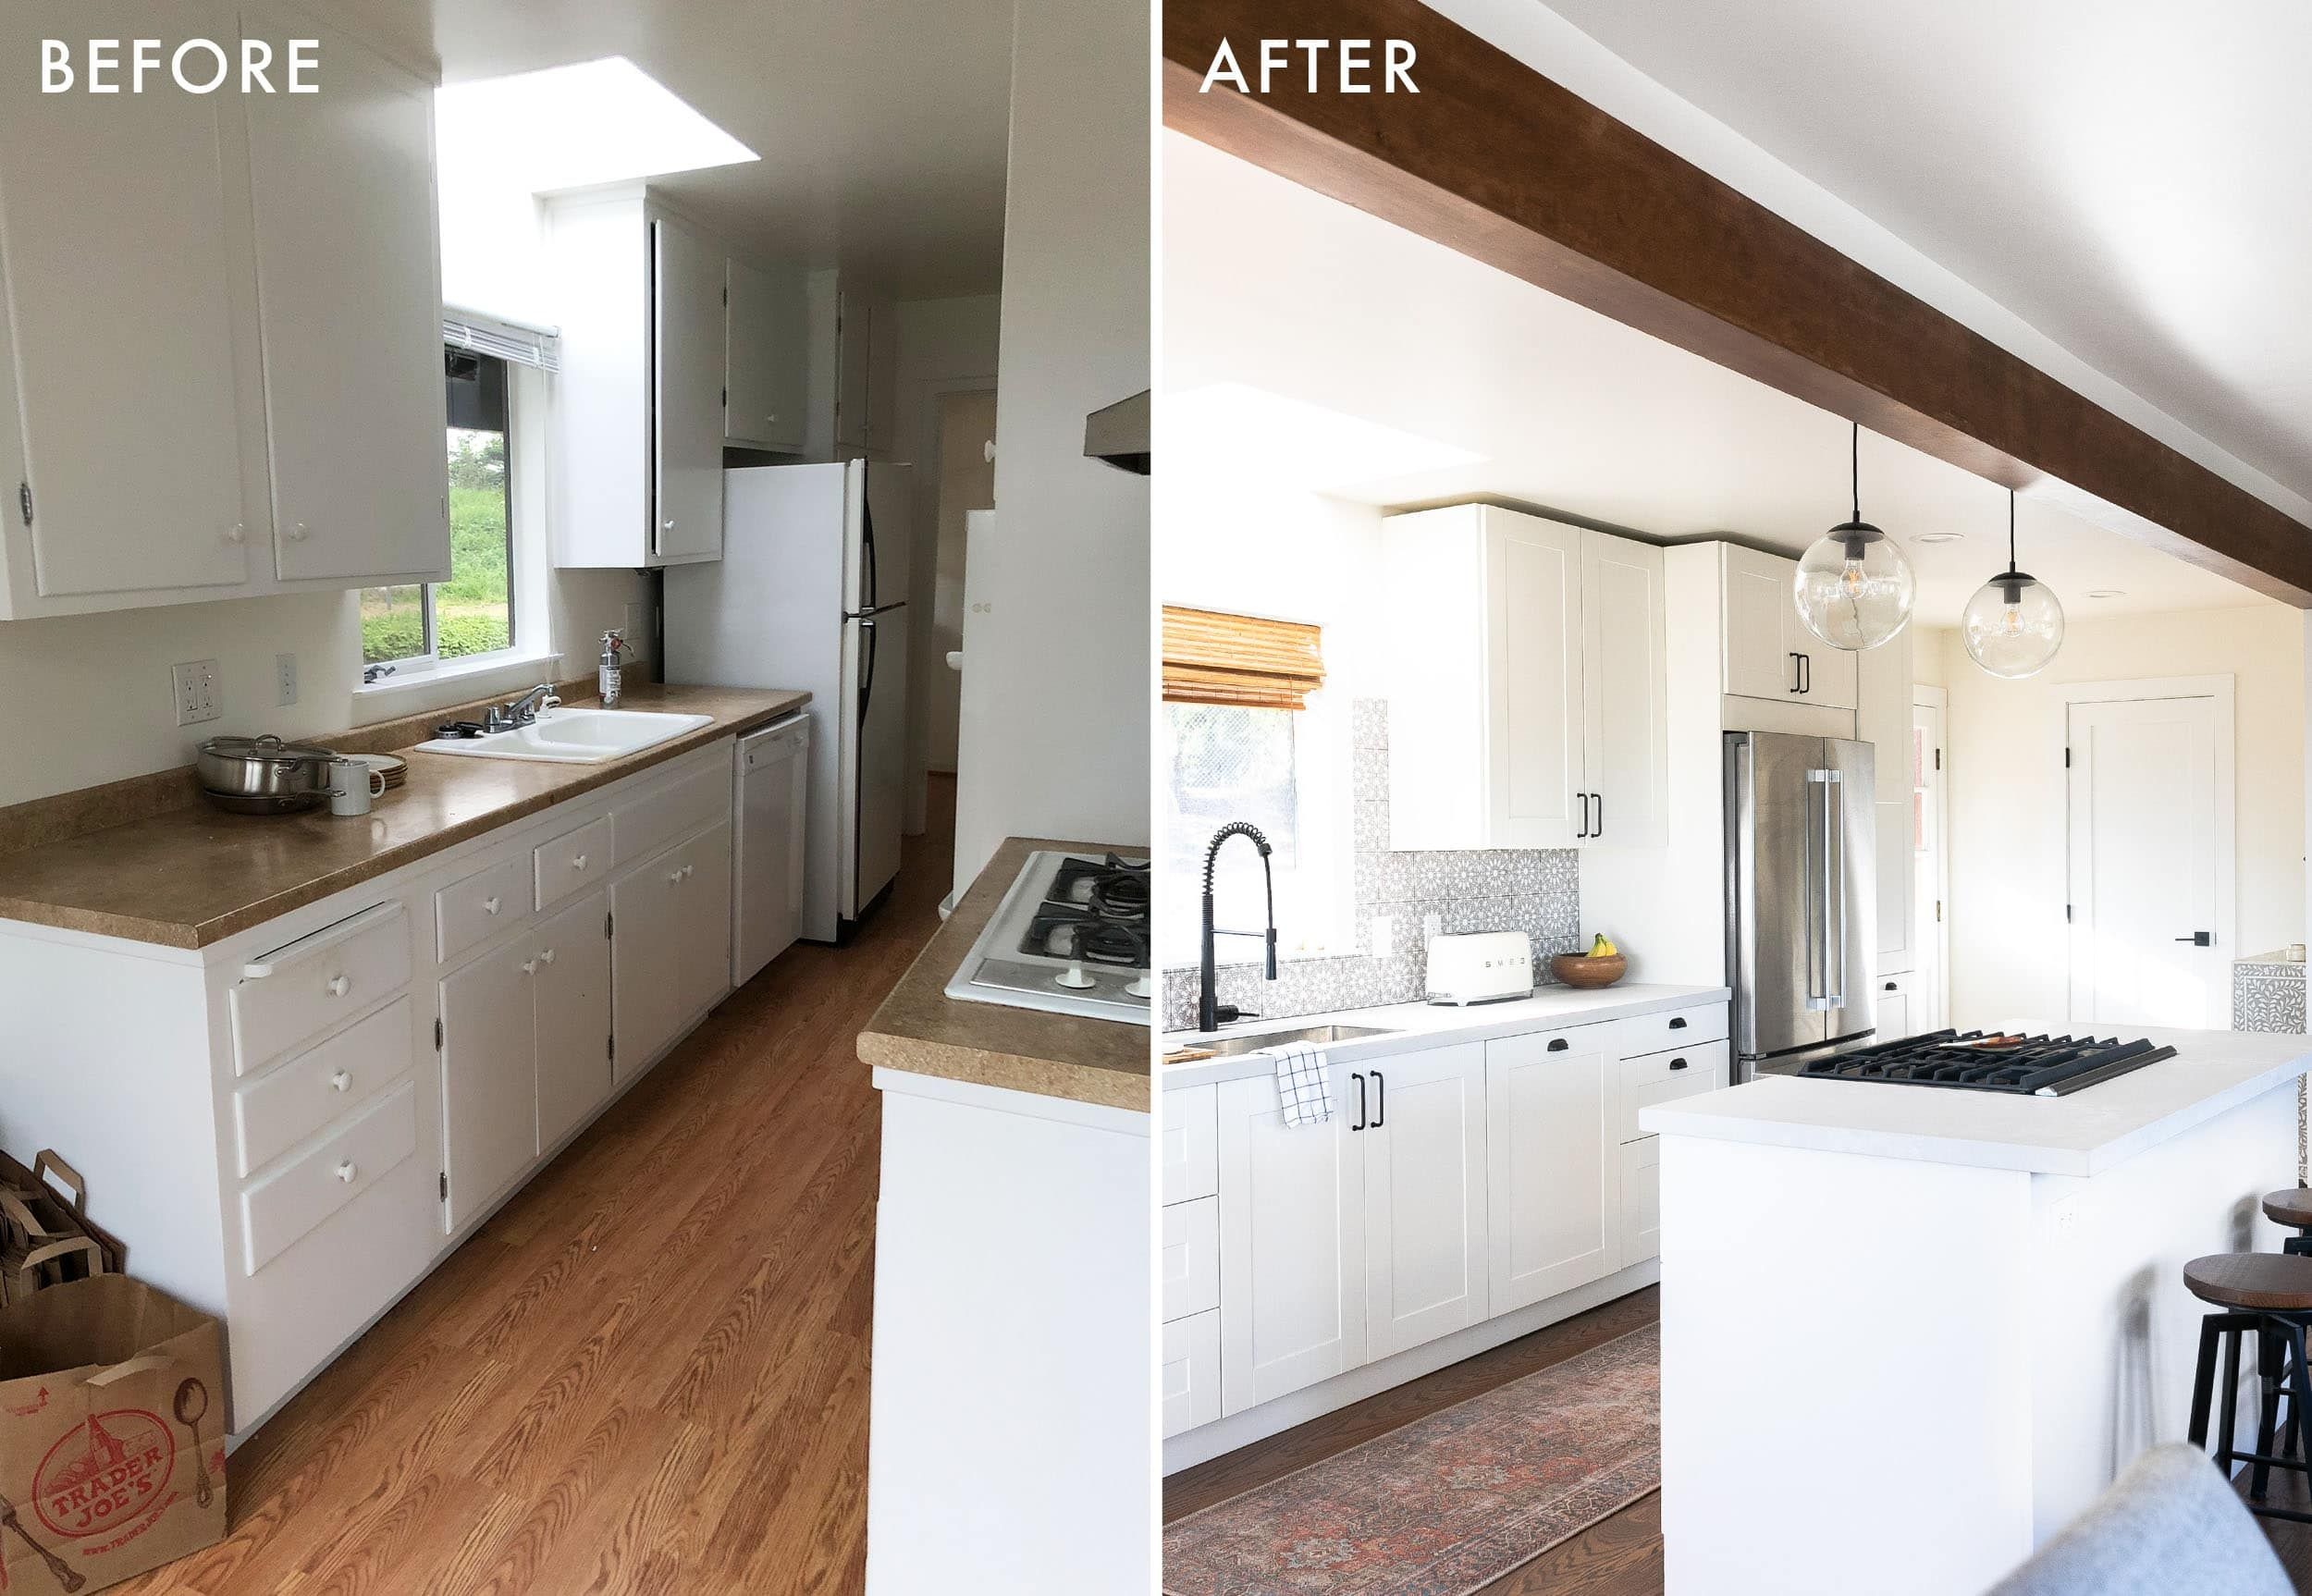 Are Ikea Kitchen Cabinets Worth The Savings A Very Honest Review One Year Later Emily Henderson Ikea Kitchen Cabinets Ikea Kitchen Countertops Ikea Kitchen